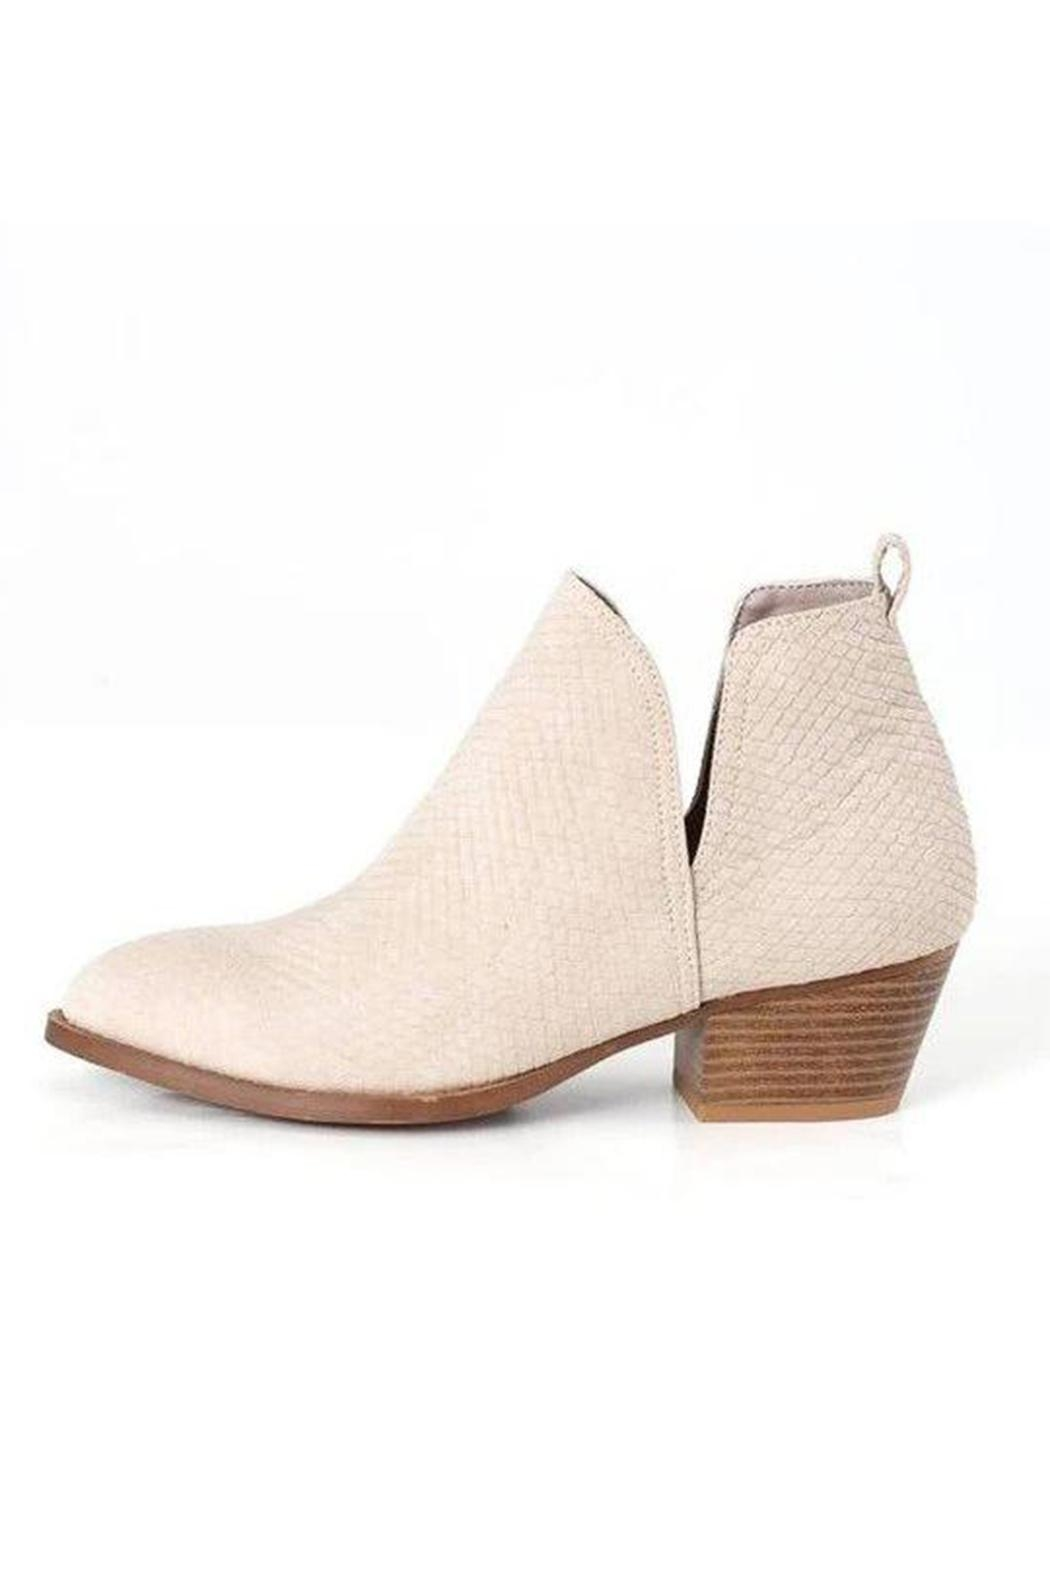 CL by Chinese Laundry Caring Chelsea Boot - Front Full Image